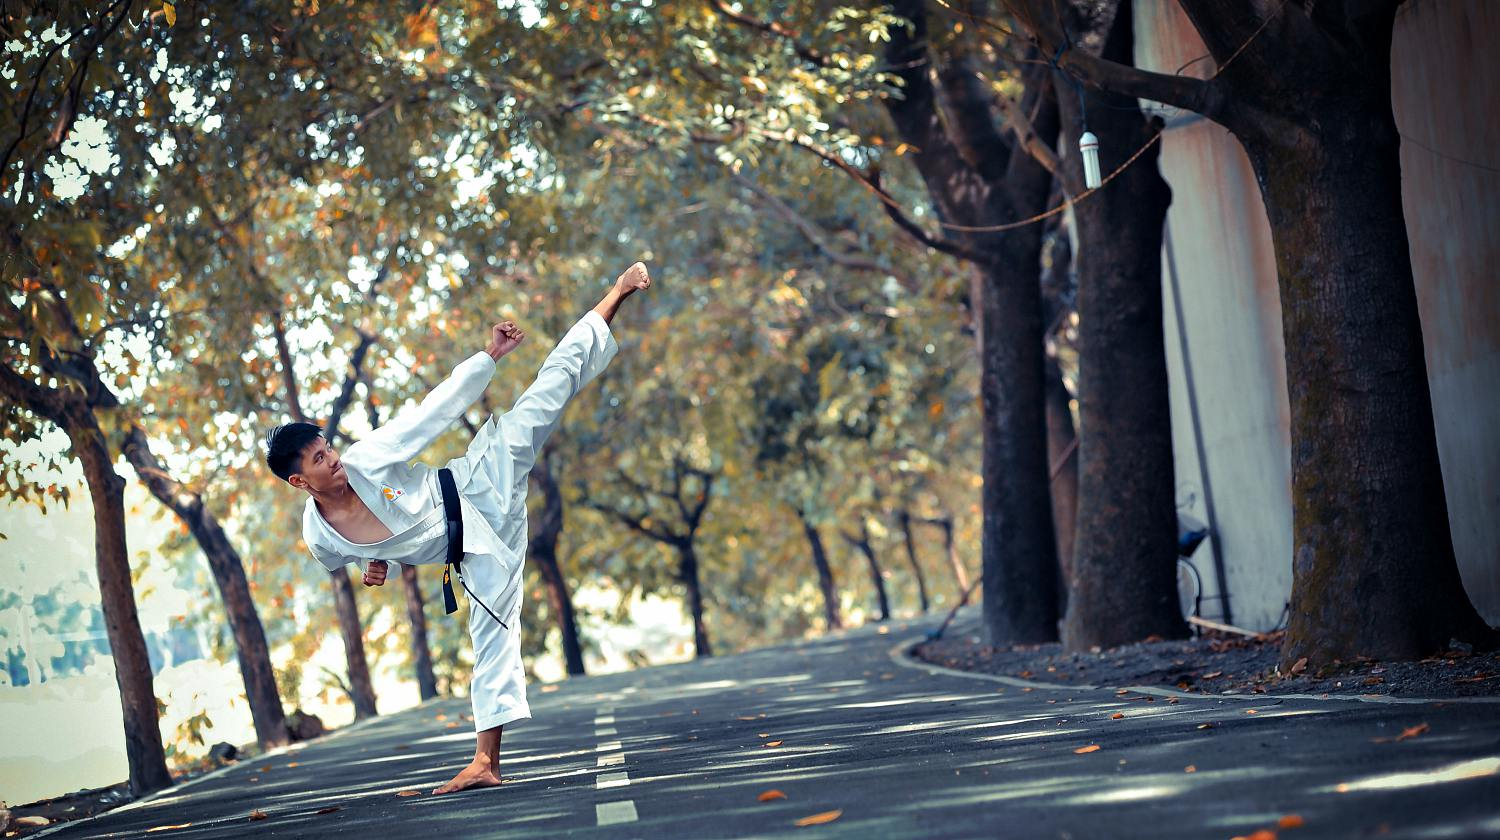 Featured | A man doing standing on road | Self-Defense Martial Arts For Personal Safety And Survival